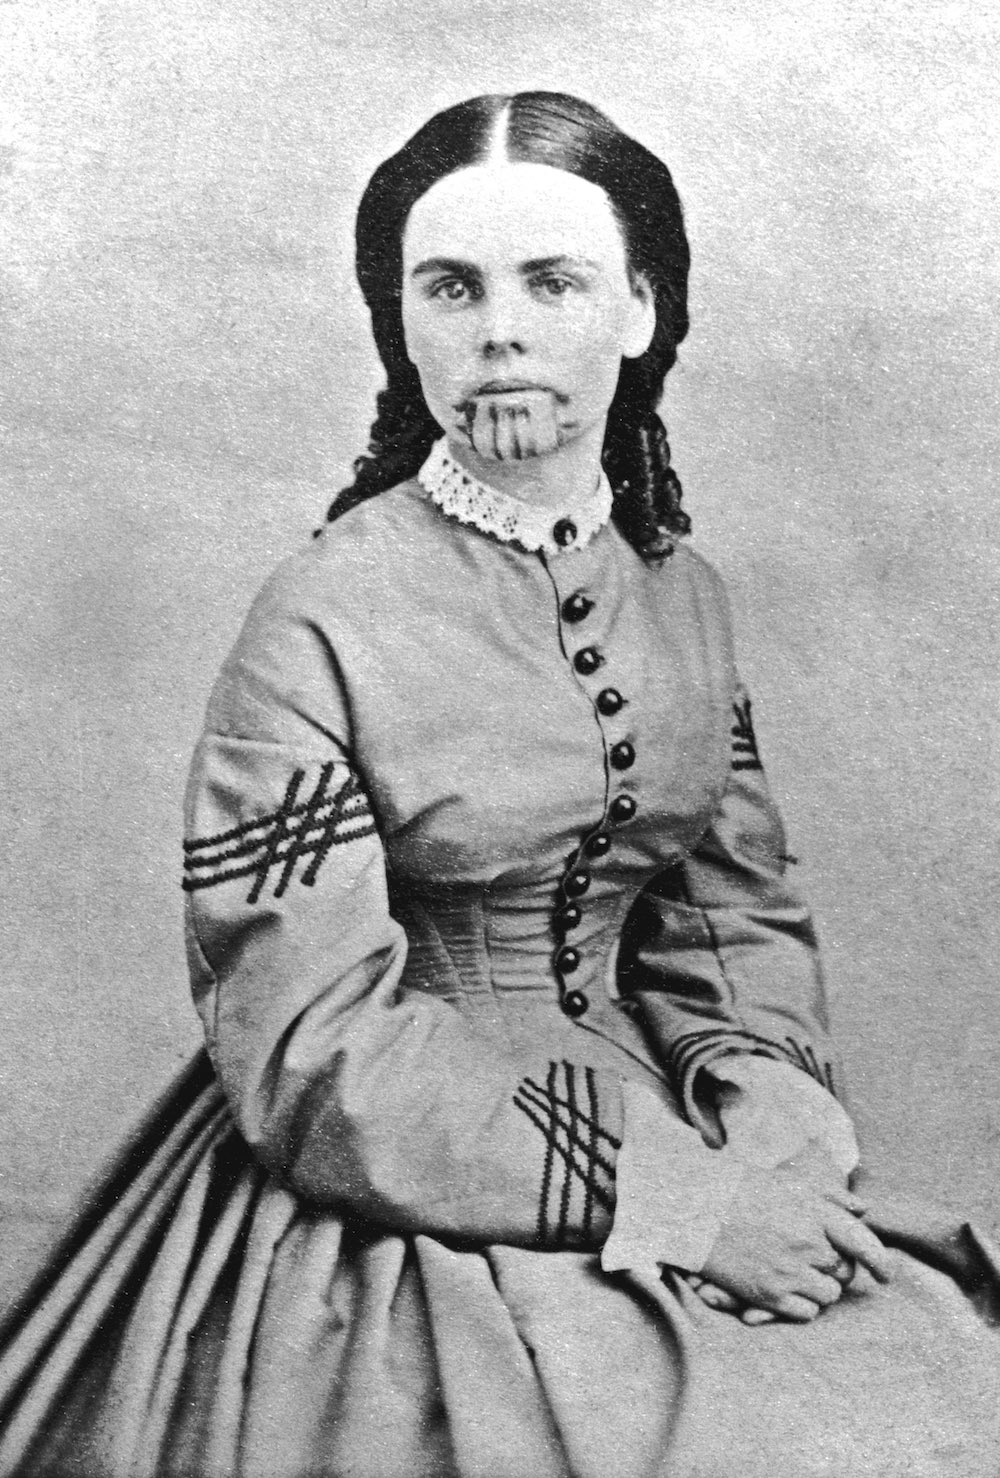 bohannon single women First liberty was first in the fight for colonel leland bohannon's is between one man and one woman when one of col bohannon's colonel bohannon.